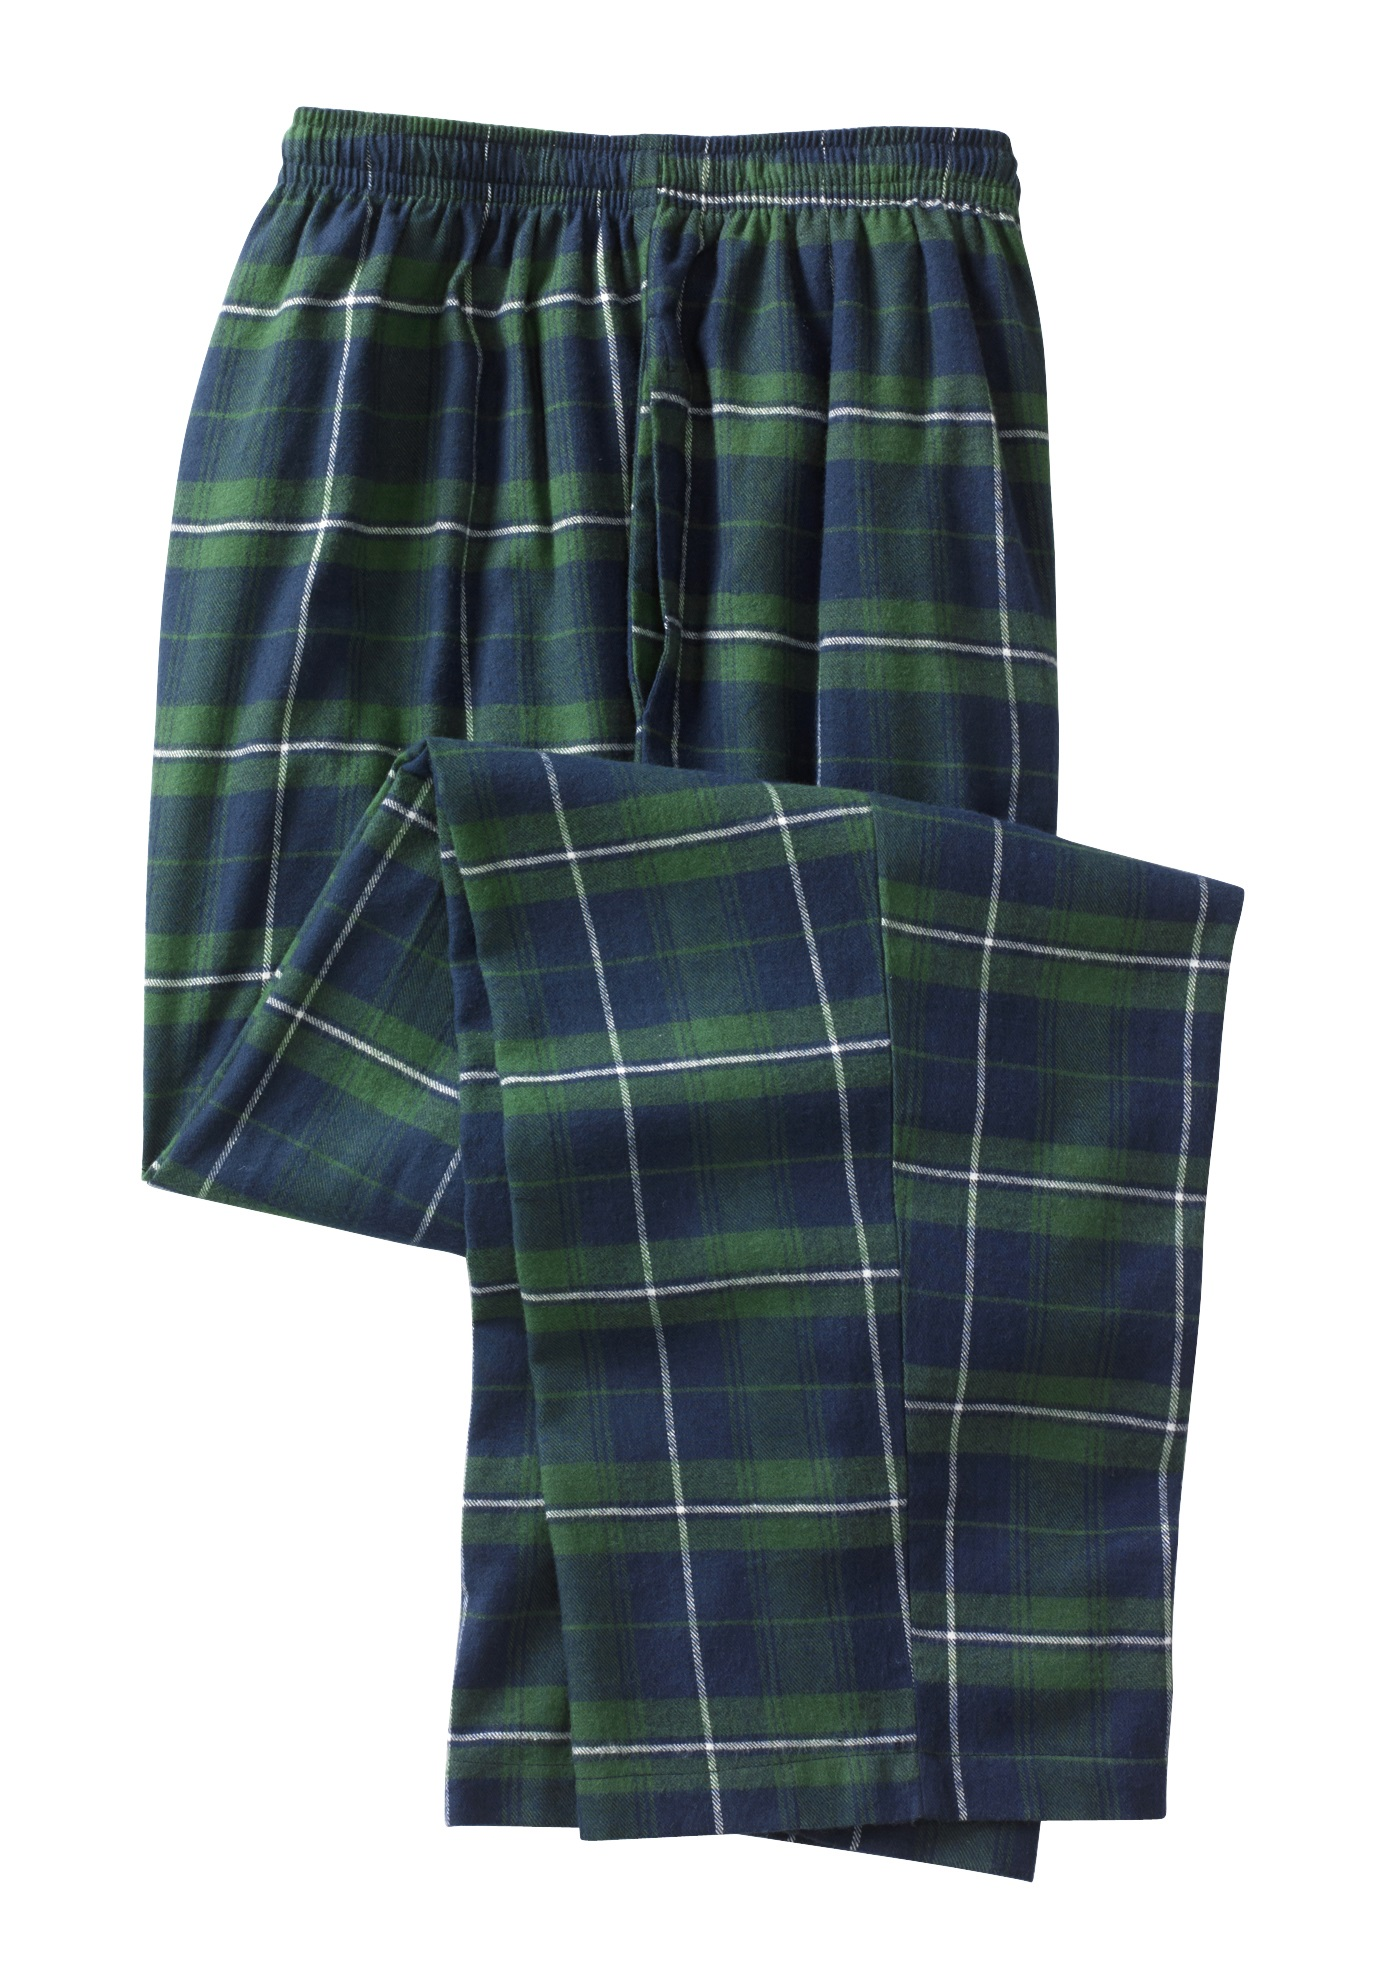 Kingsize Men's Big & Tall Flannel Plaid Lounge Pants